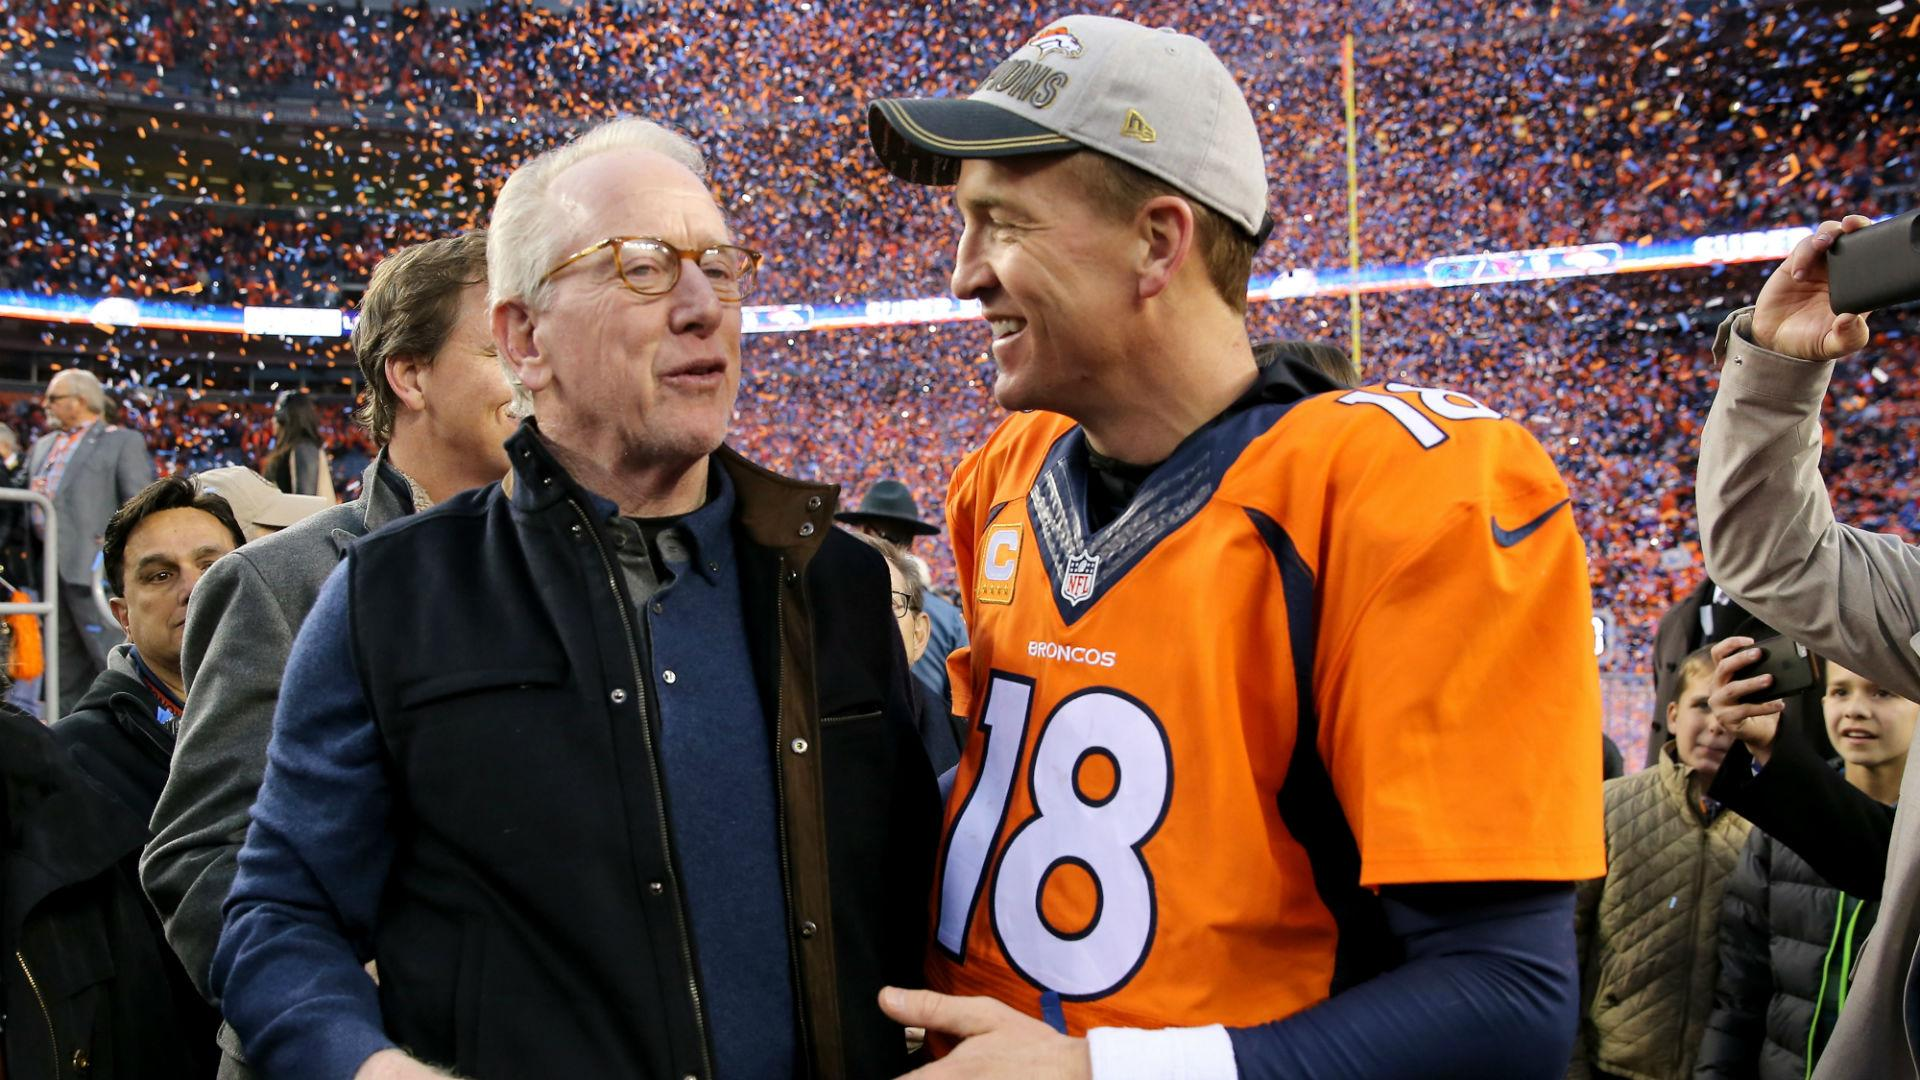 Peyton's done in Denver, maybe everywhere - Archie Manning